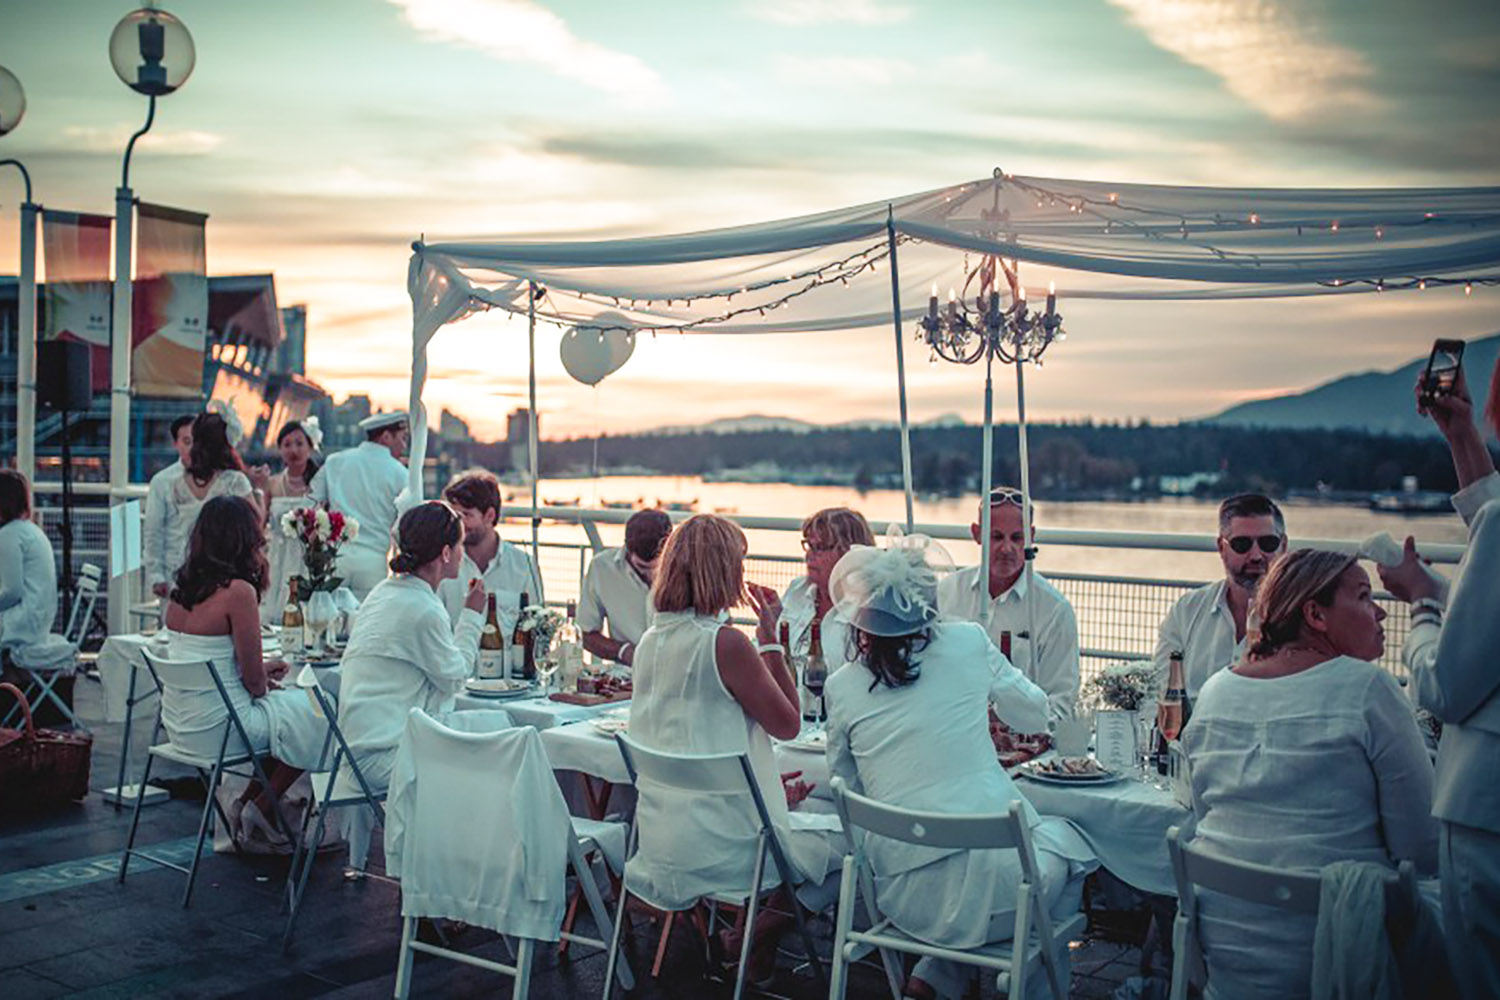 Diner en Blanc returns to Vancouver this summer